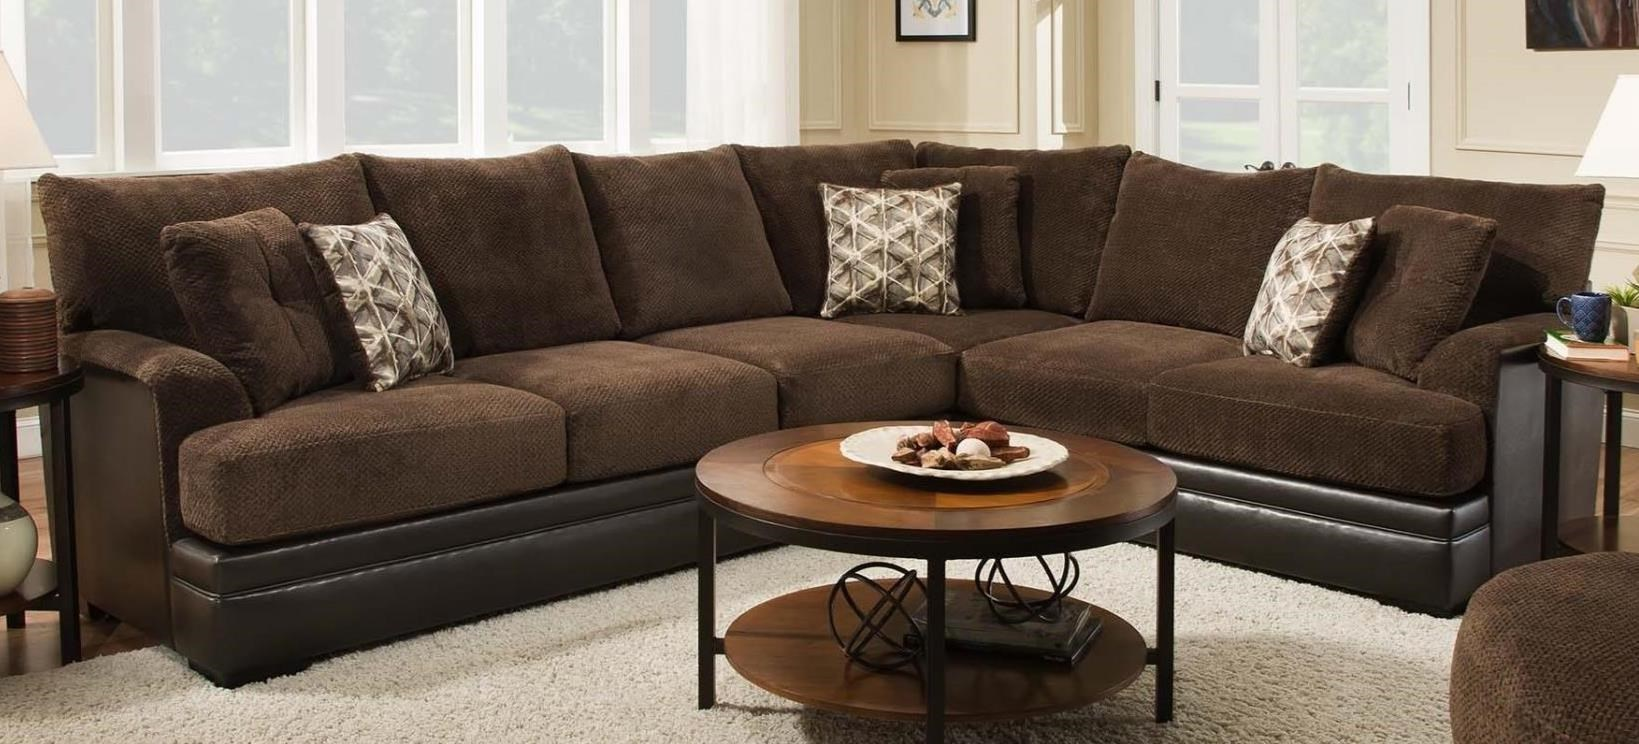 8640 2 Piece Two-Tone Sectional by Albany  sc 1 st  Furniture and ApplianceMart : two tone sectional sofa - Sectionals, Sofas & Couches